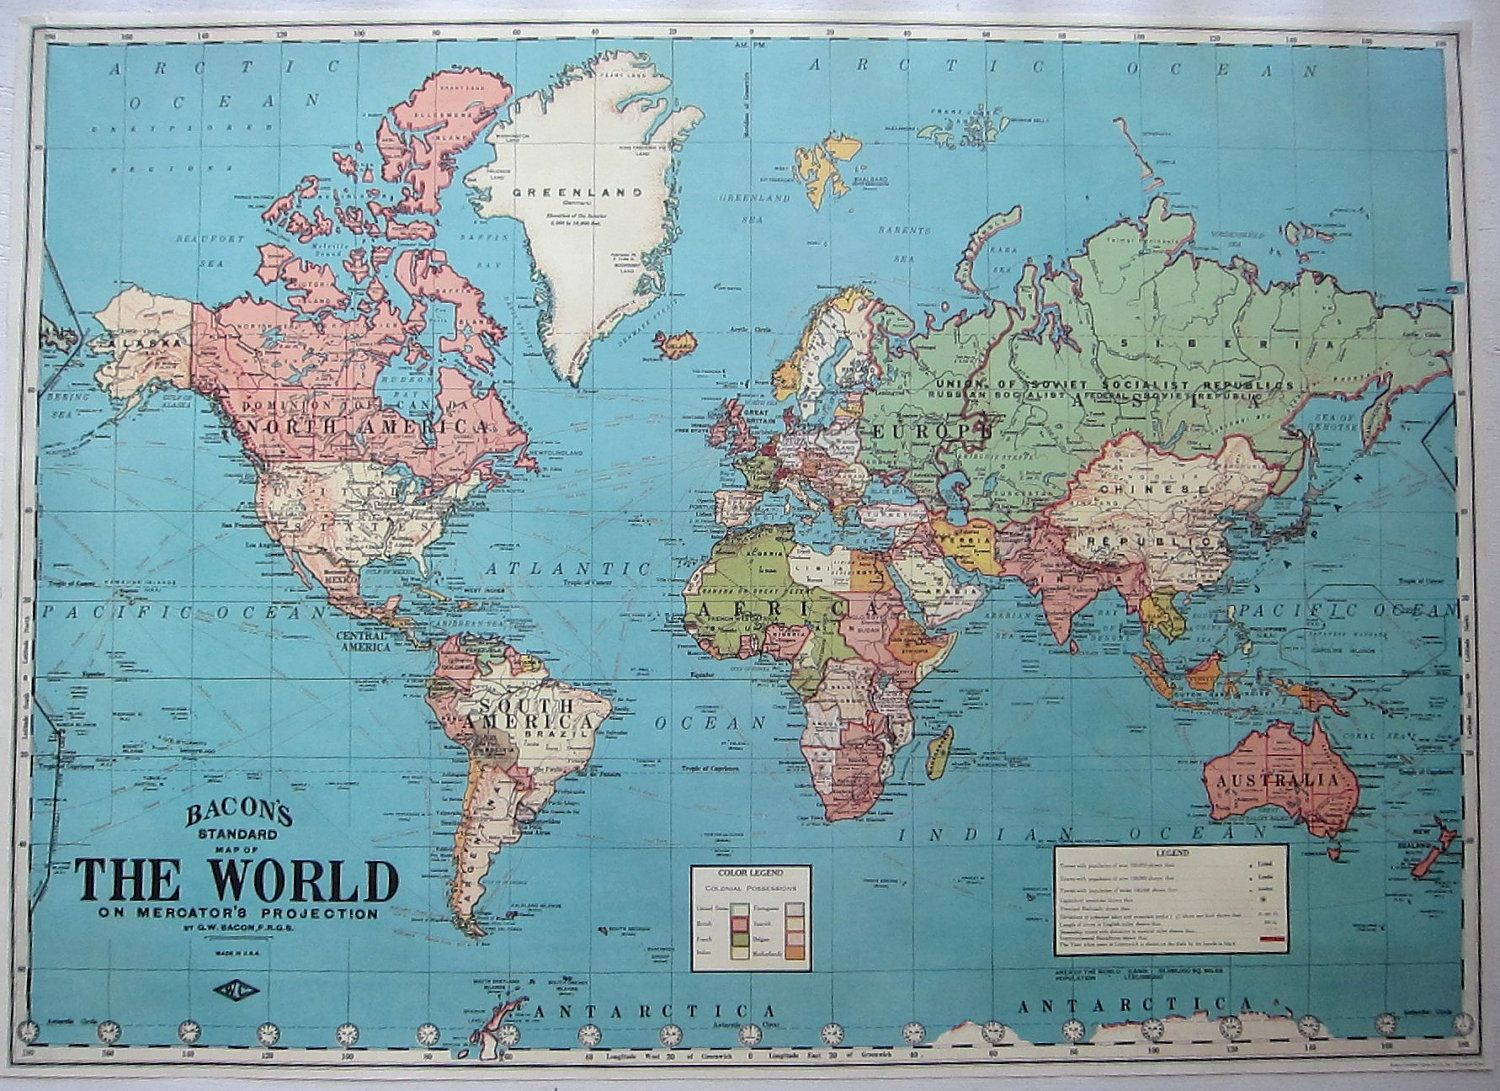 Diy travel map kit world map no 4 want something like this to diy travel map kit world map no want something like this to fit my corkboard gumiabroncs Gallery